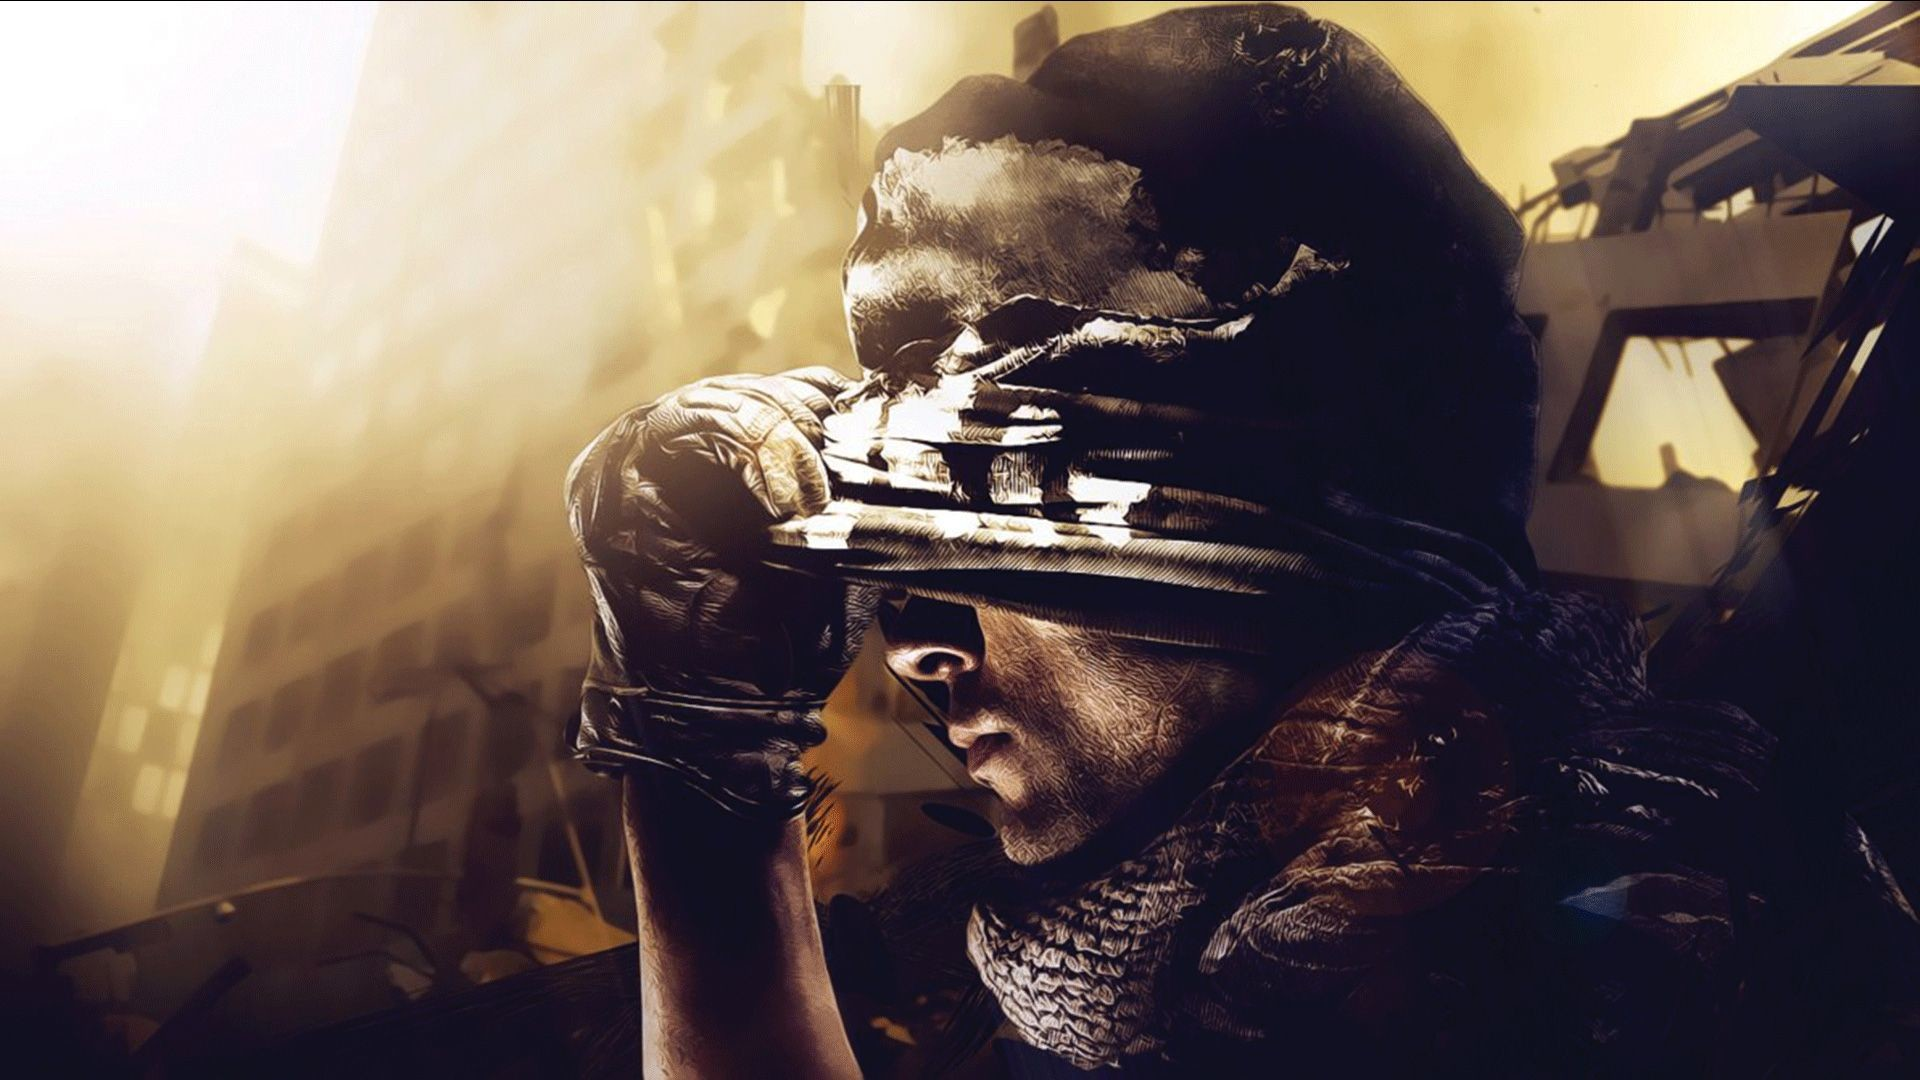 Call Of Duty Wallpaper Group with items